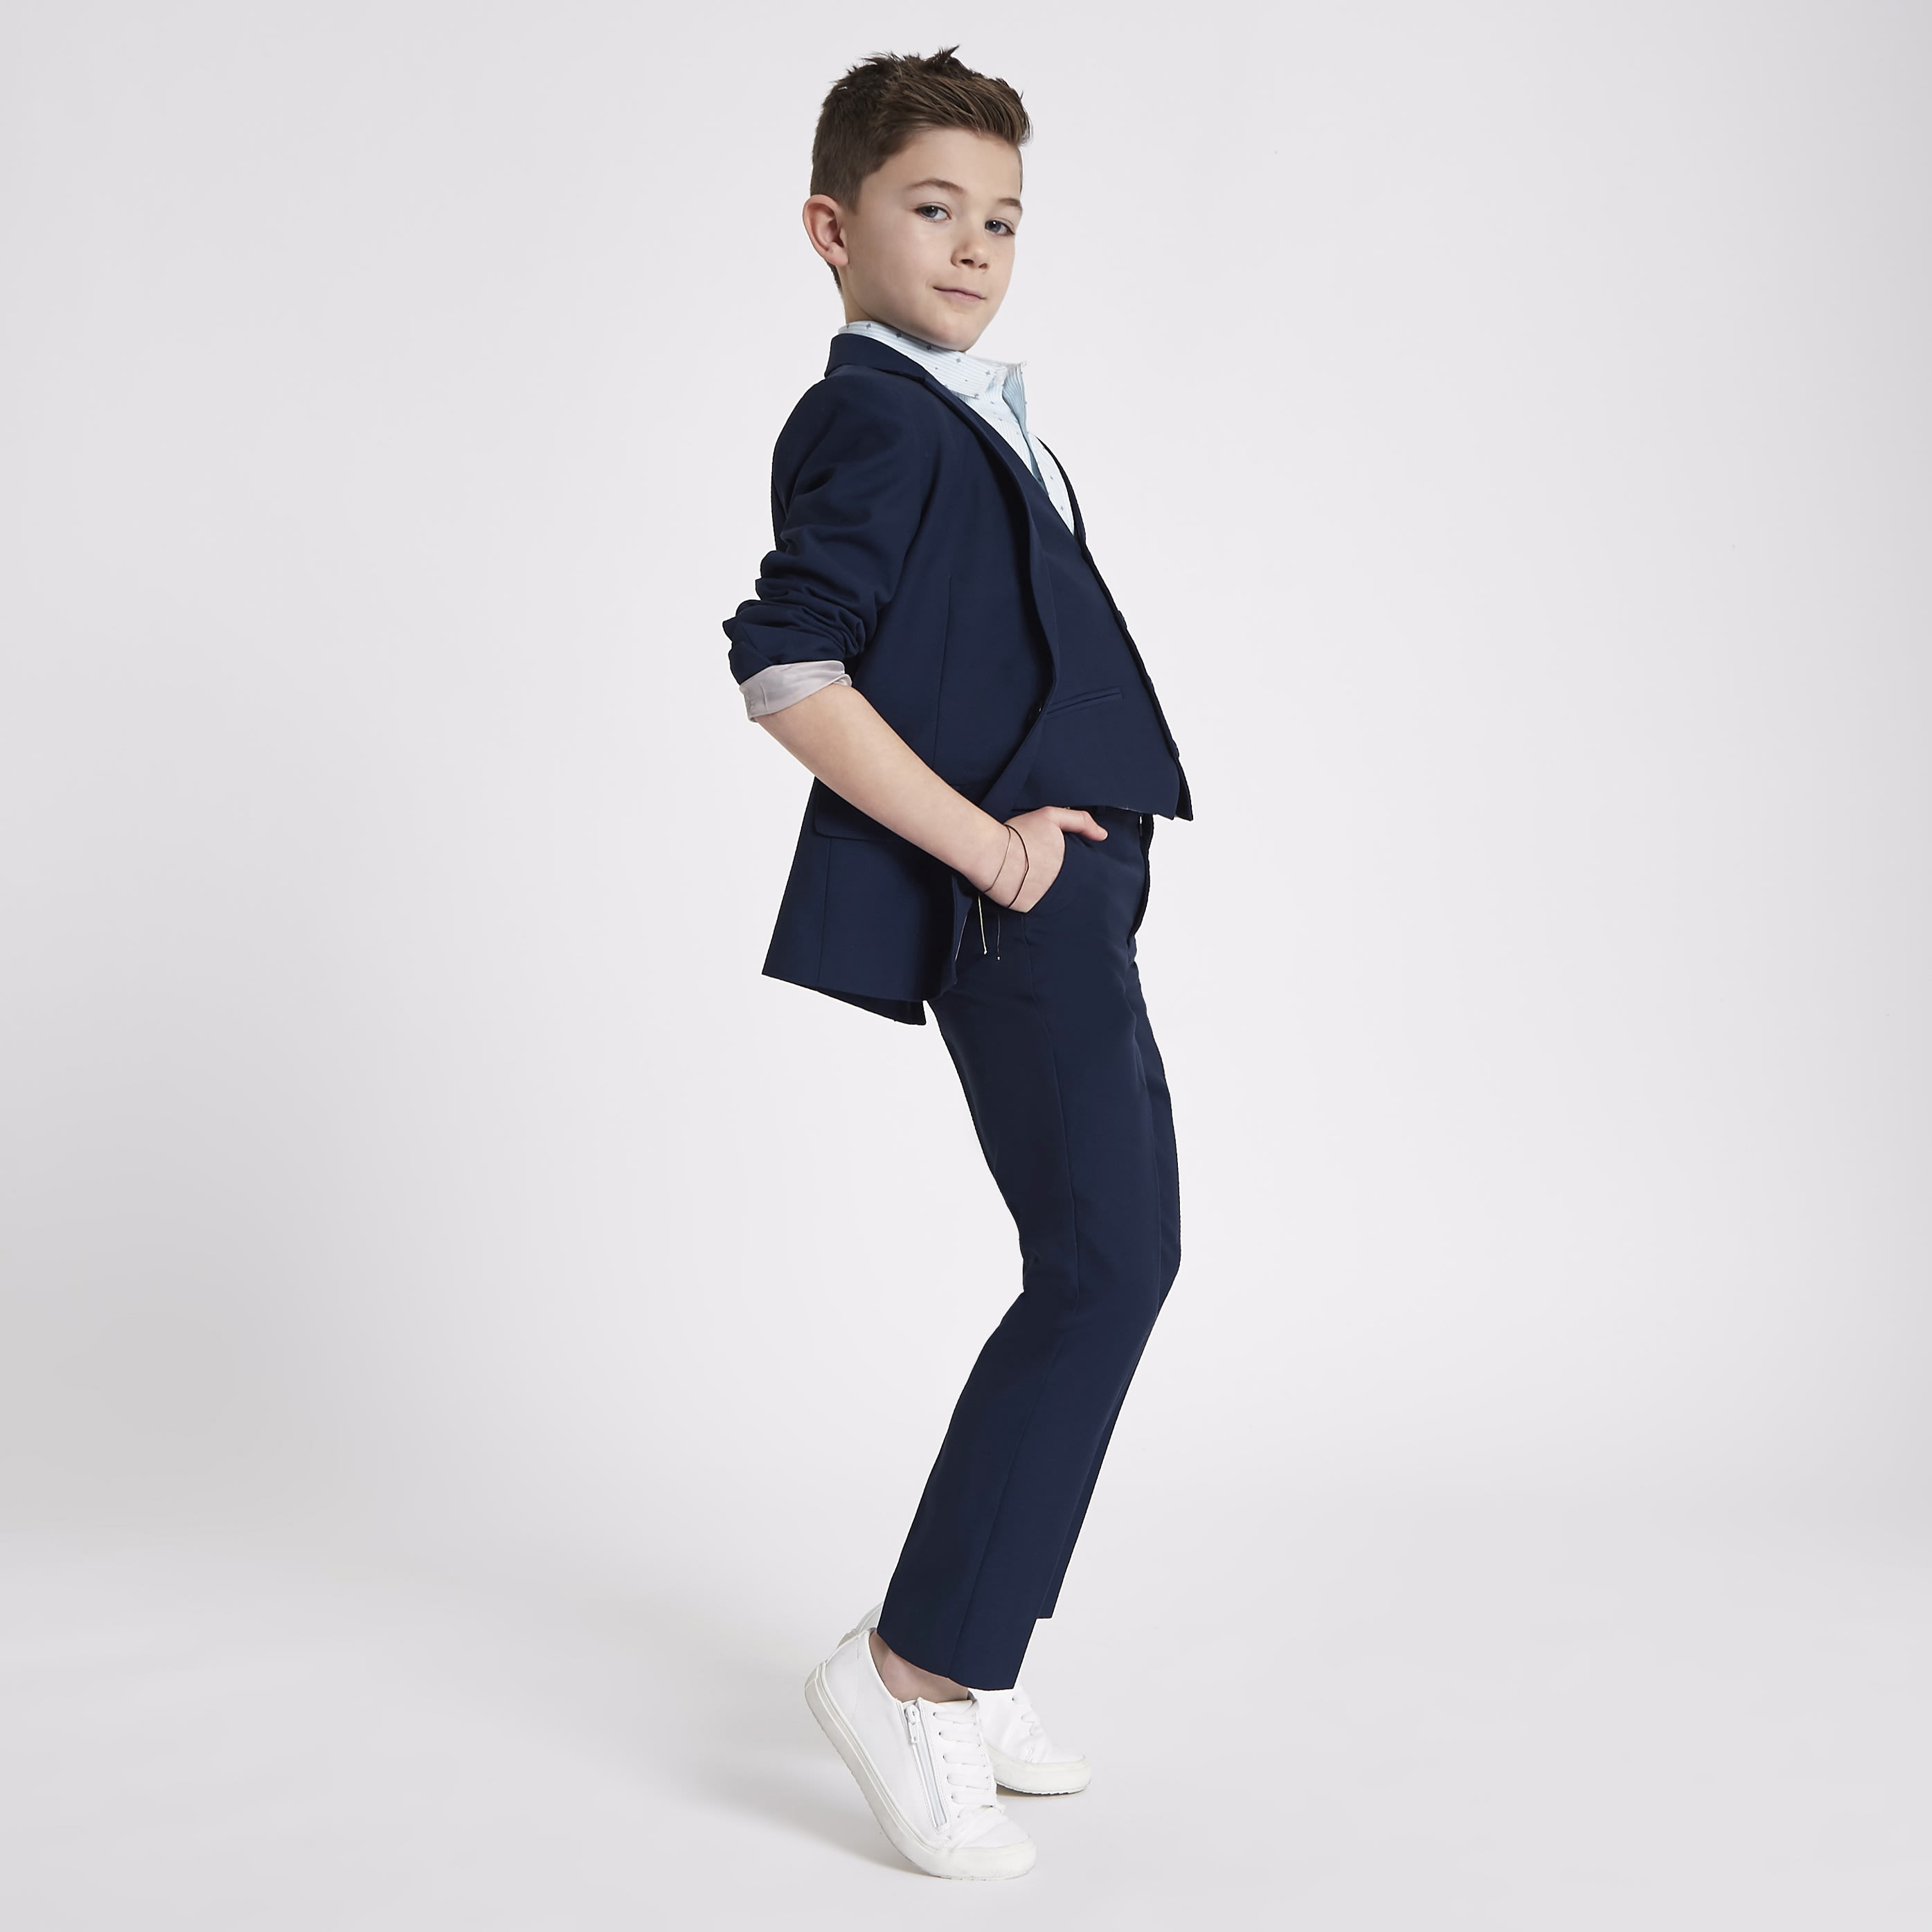 RIVER ISLAND | Mens Boys Navy suit trousers | Goxip